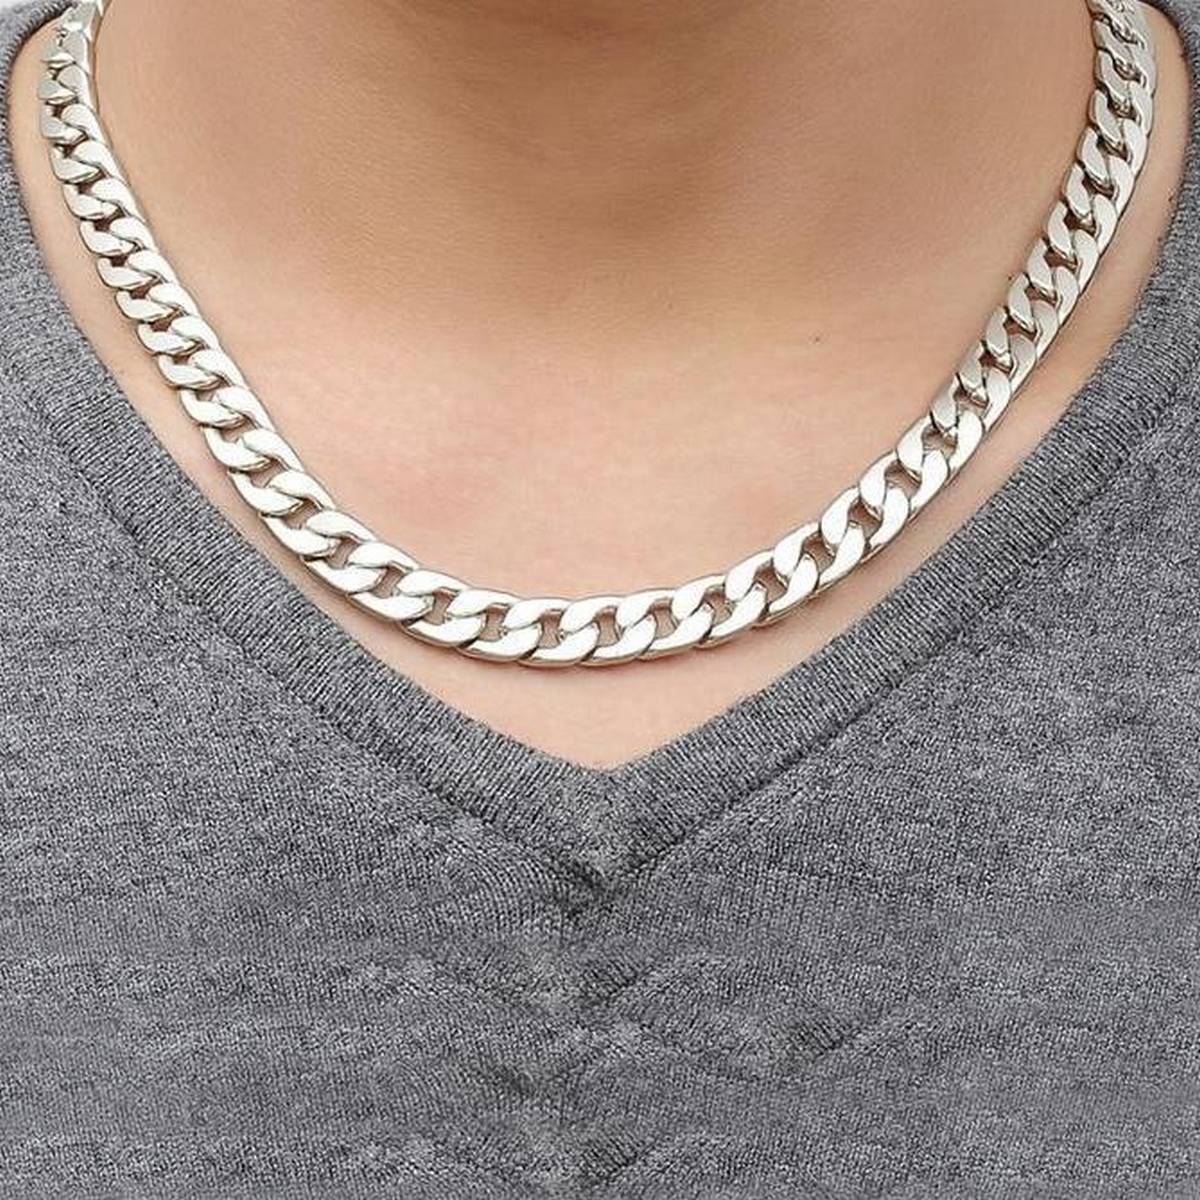 TRENDY THICK AND HEAVY SILVER NECK CHAIN